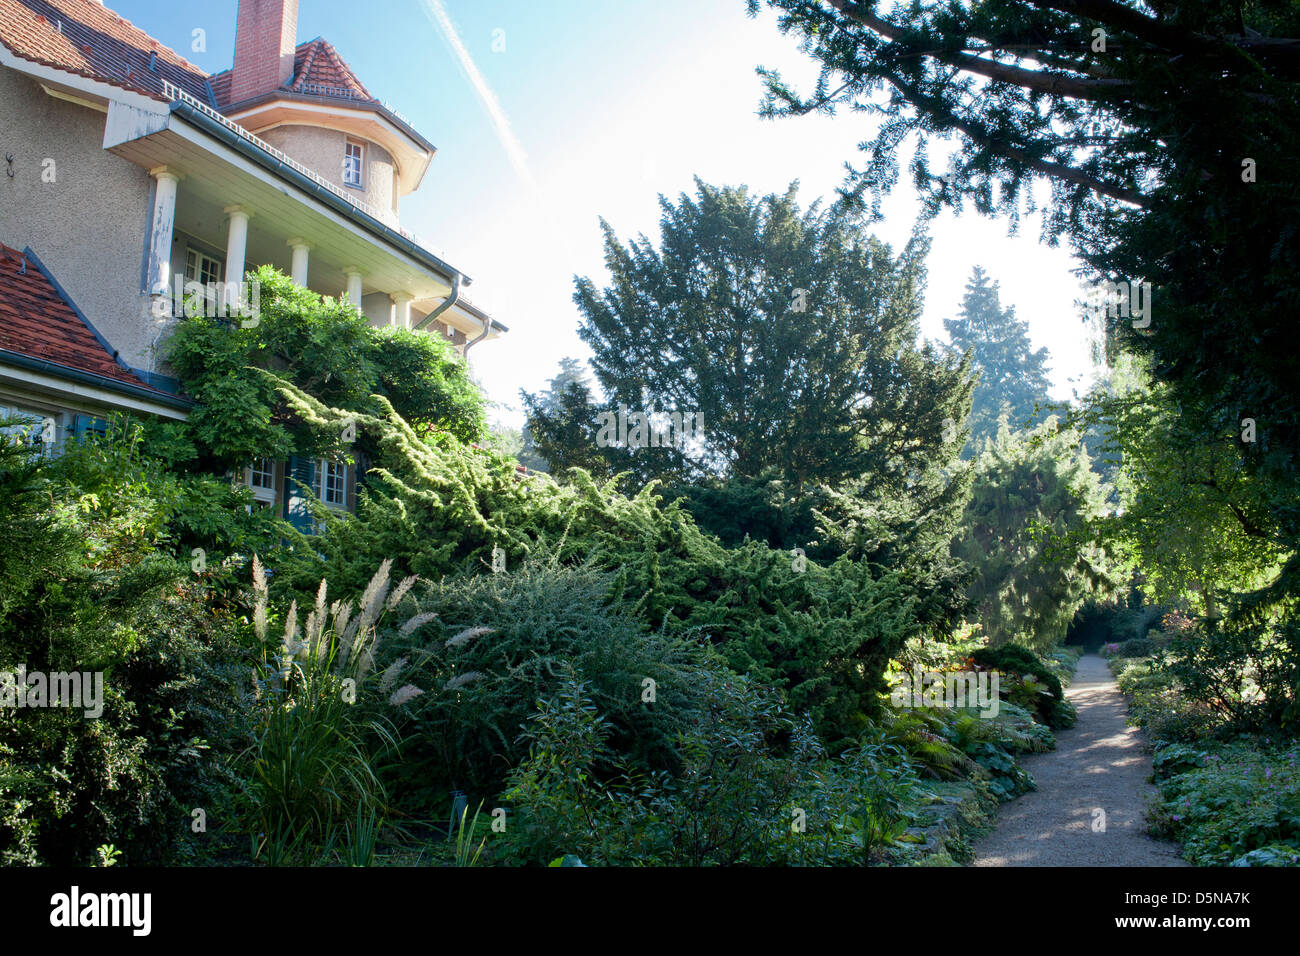 View over the house and garden, Karl Foerster Garden Potsdam Bornim Germany Stock Photo